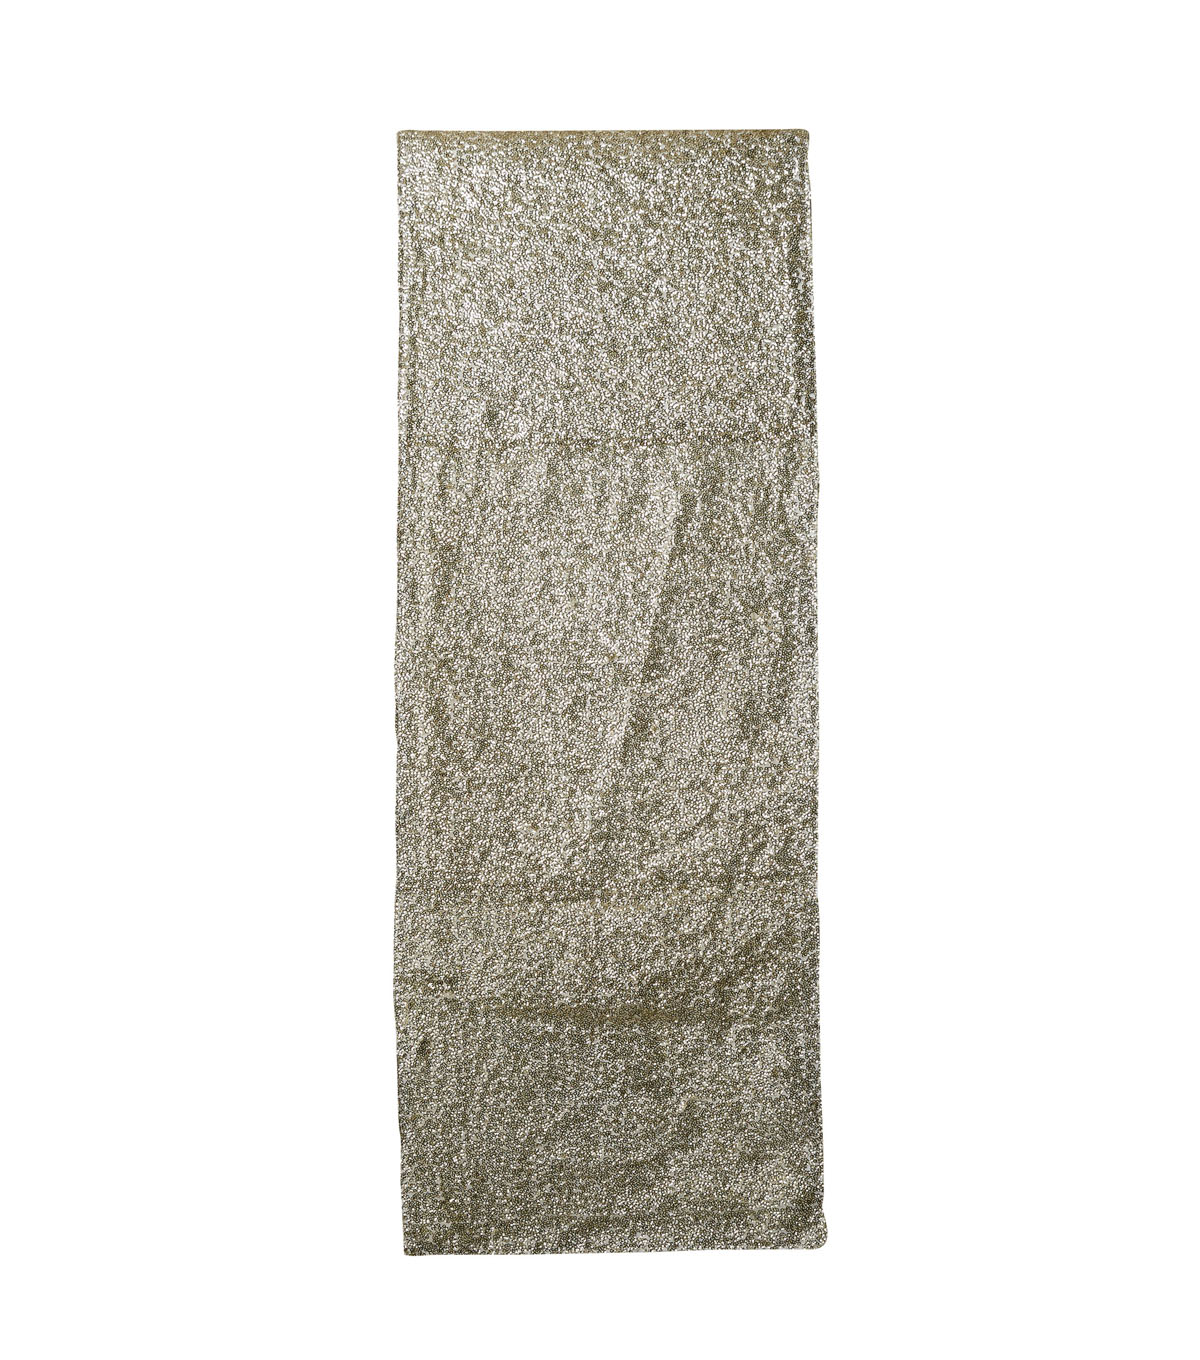 3R Studios Christmas Fabric Sequined Table Runner-Gold